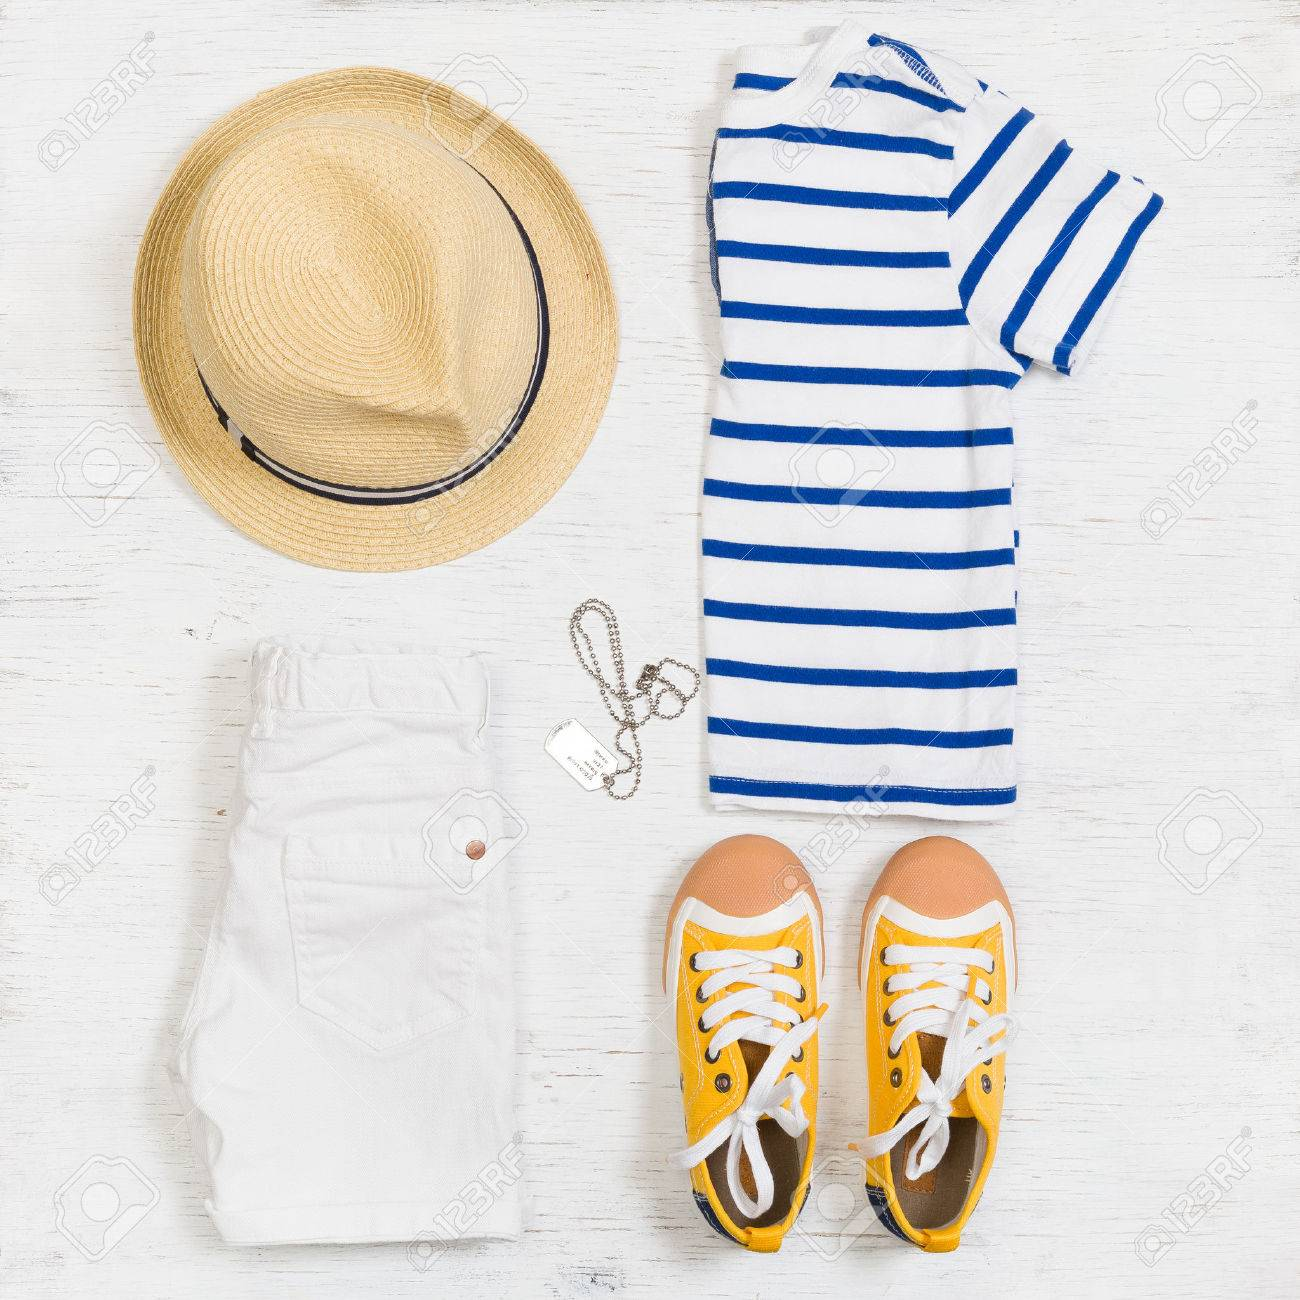 b41caa3adc87 Summer Clothes Stock Photos And Images - 123RF